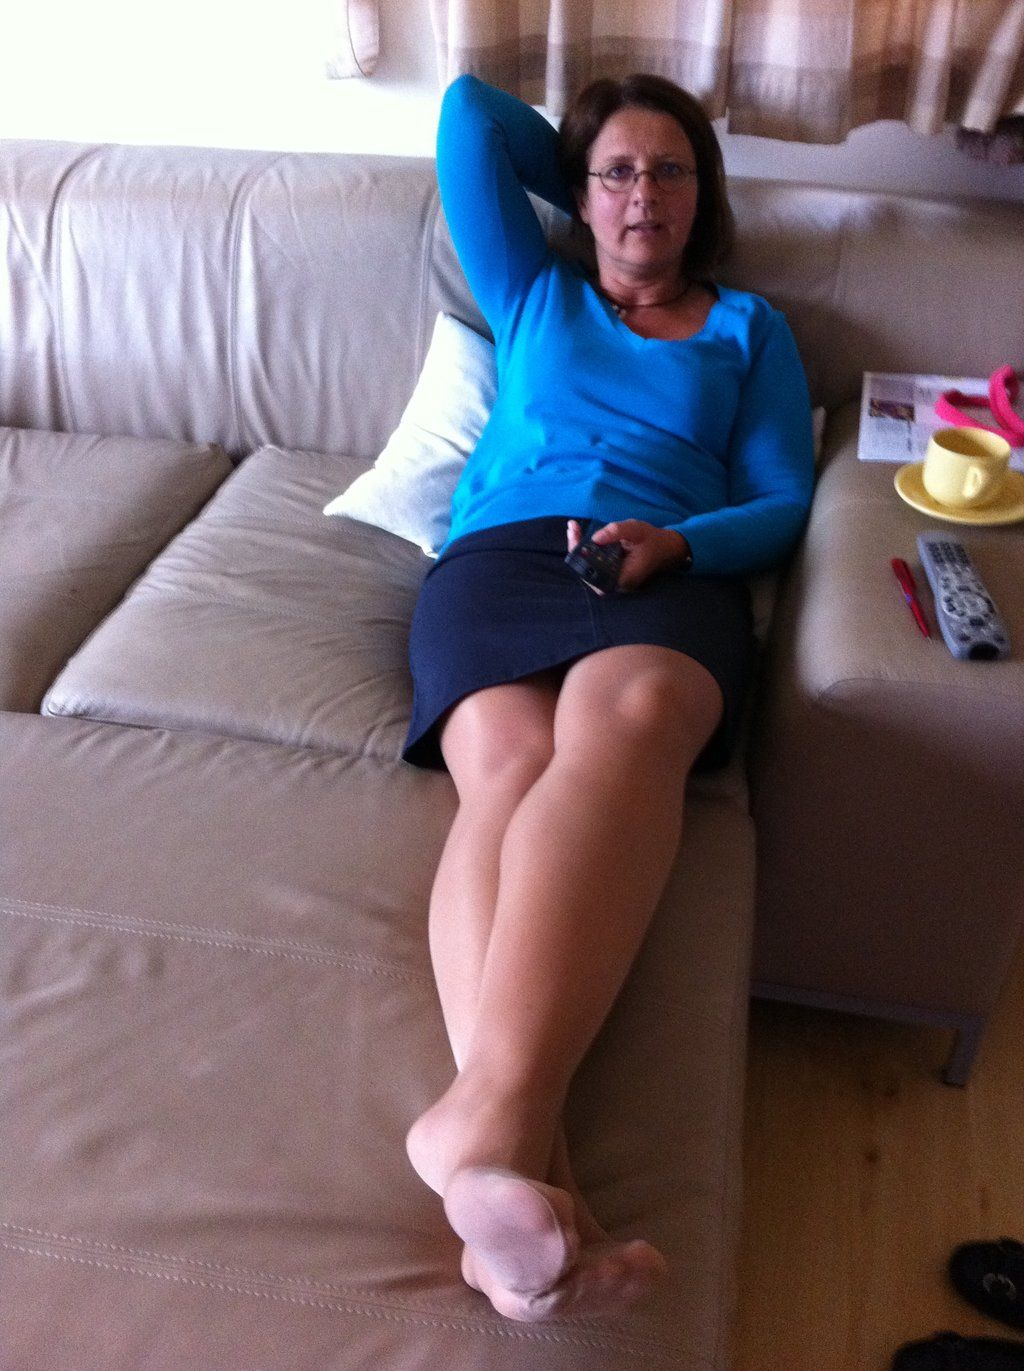 Hot Mature Lady Posting At Home In Tan Pantyhose Showing